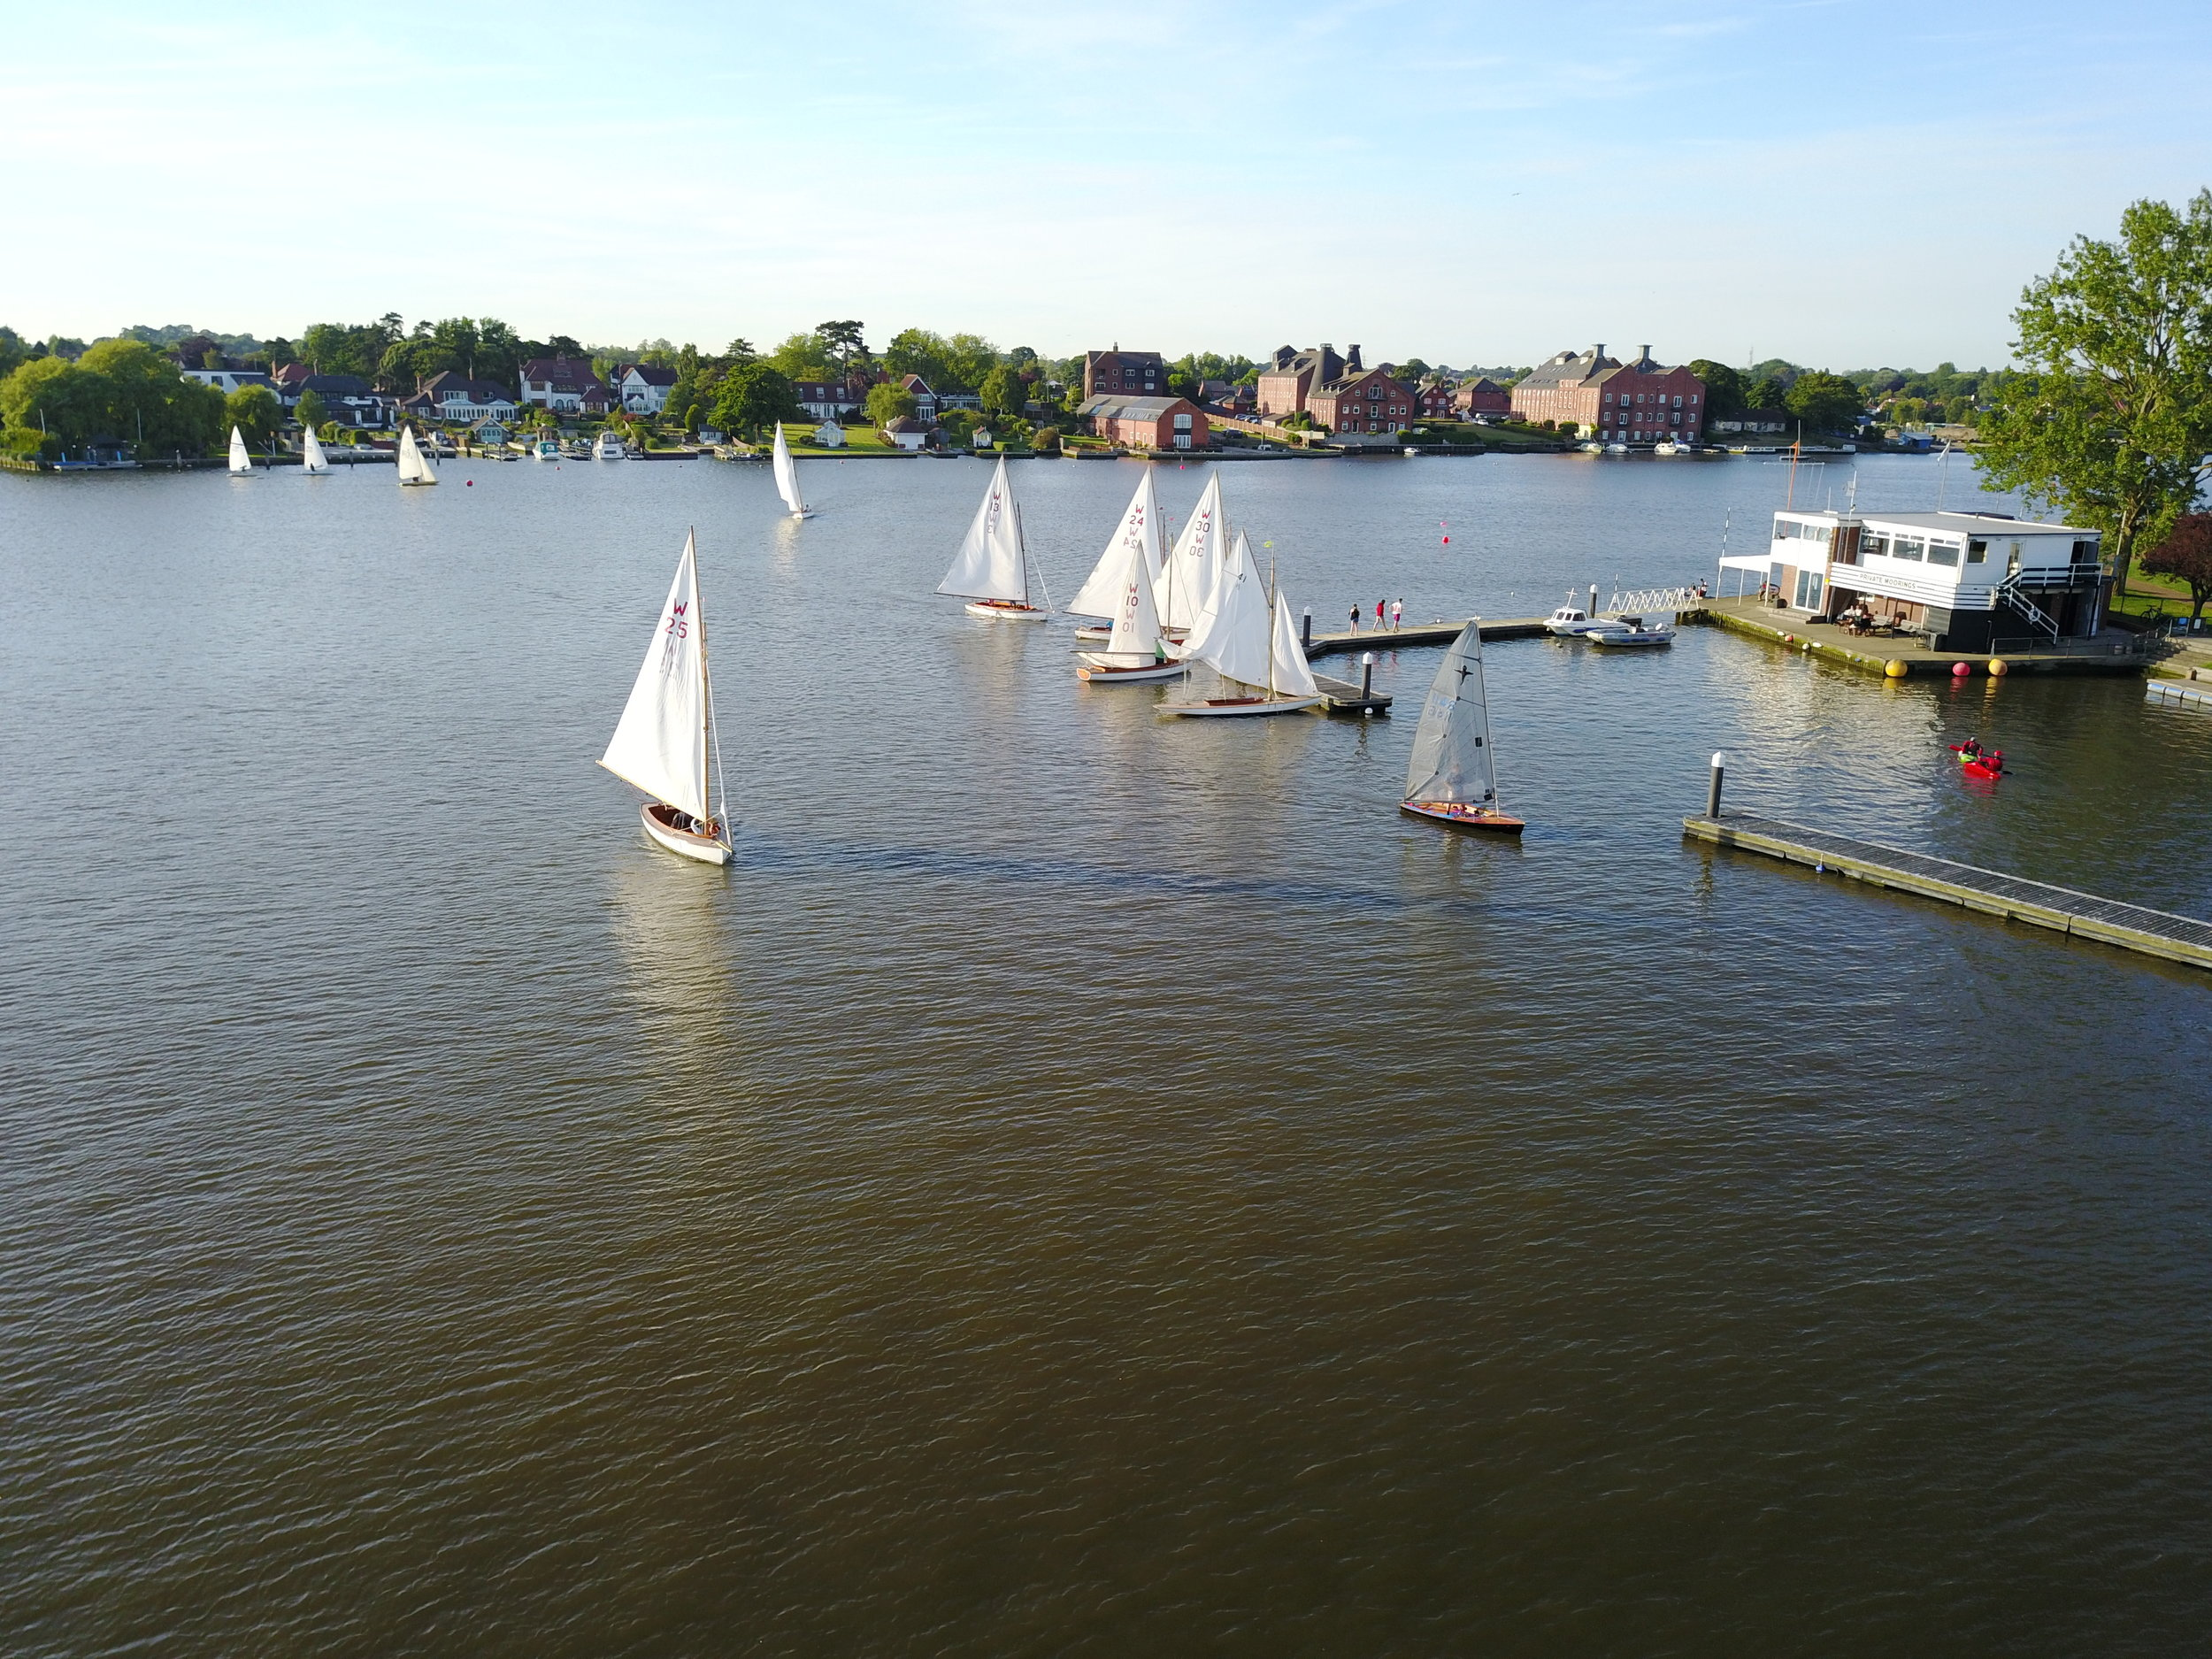 Above: Picturesque Oulton Broad, Suffolk.